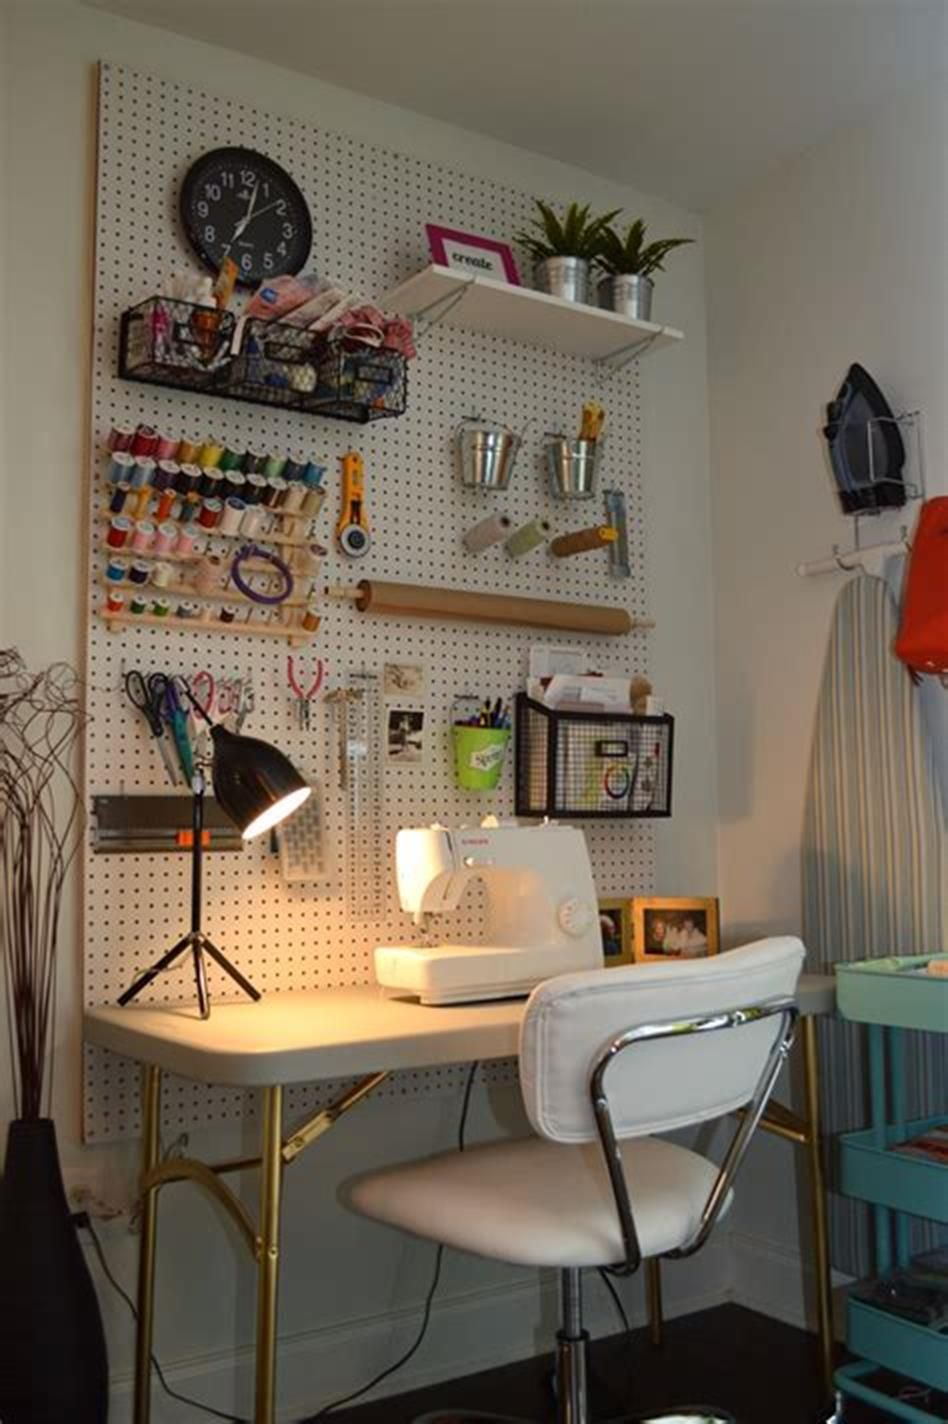 Designing A Sewing Room: 50+ Most Popular Small Craft And Sewing Room Design Ideas